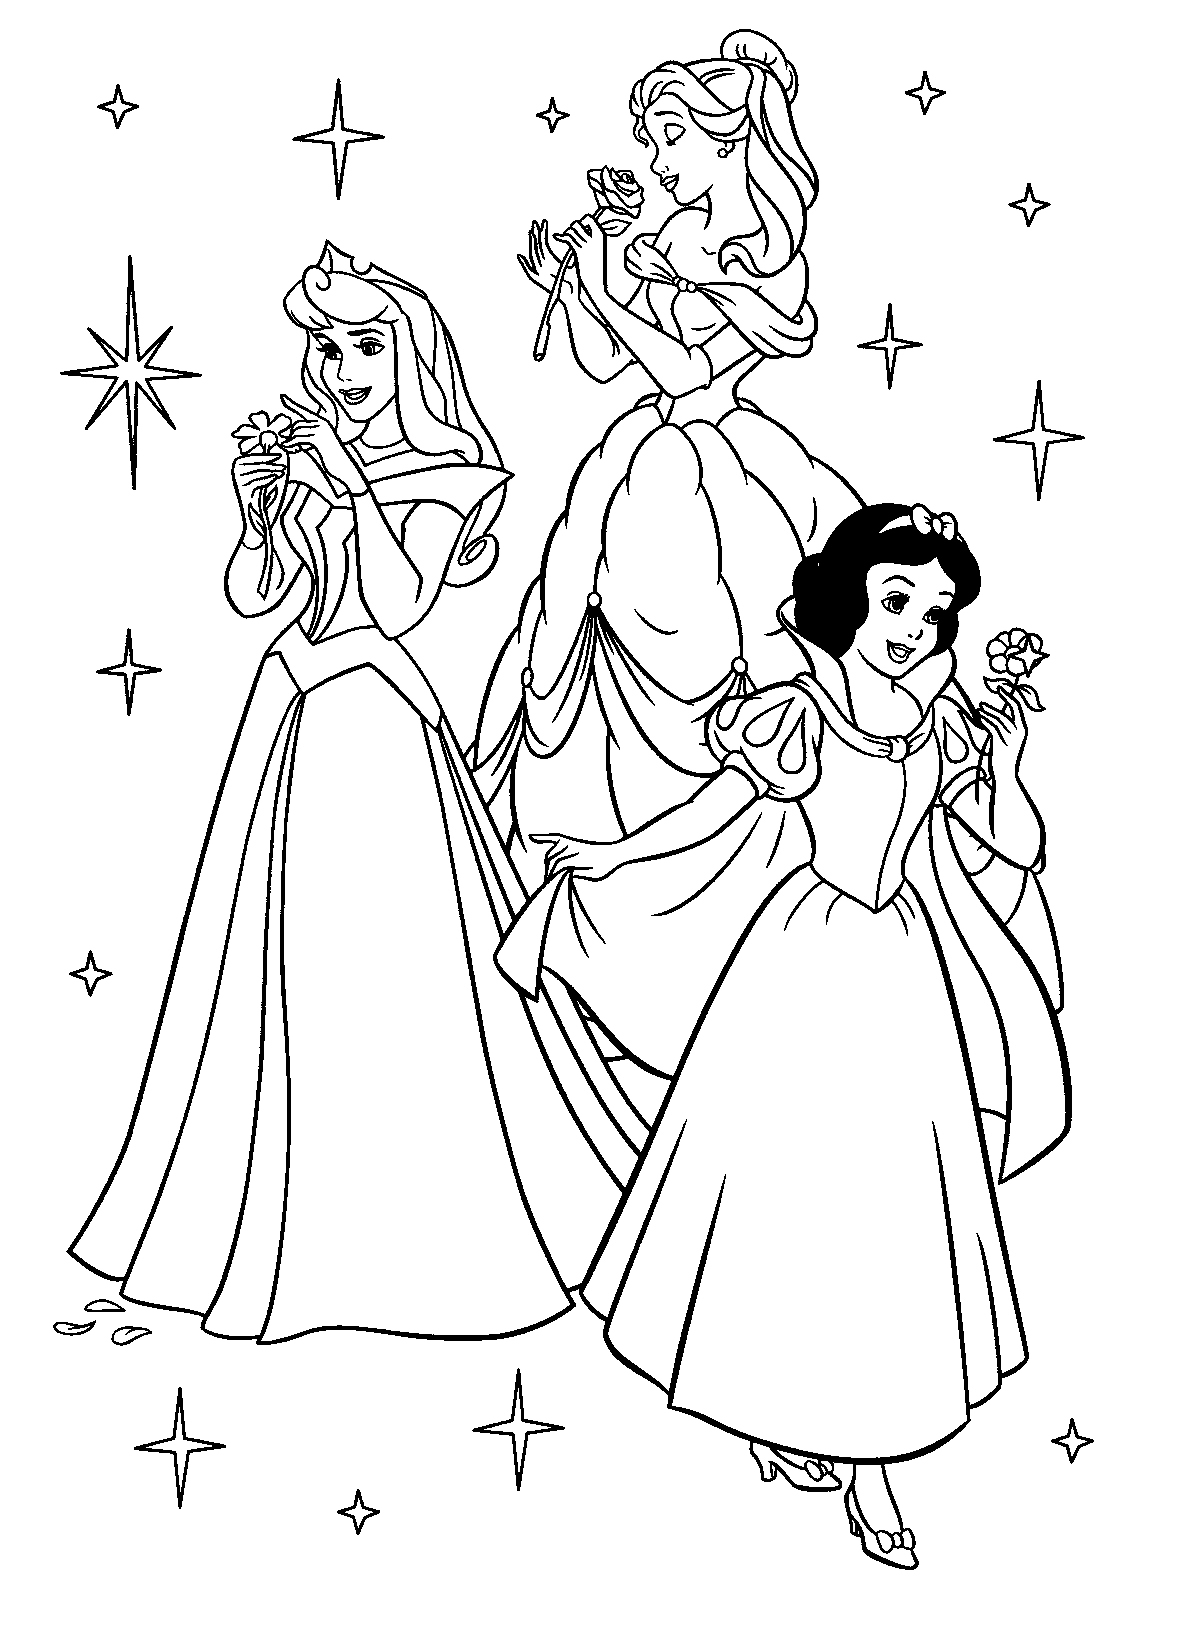 kids disney princess coloring pages - photo#4